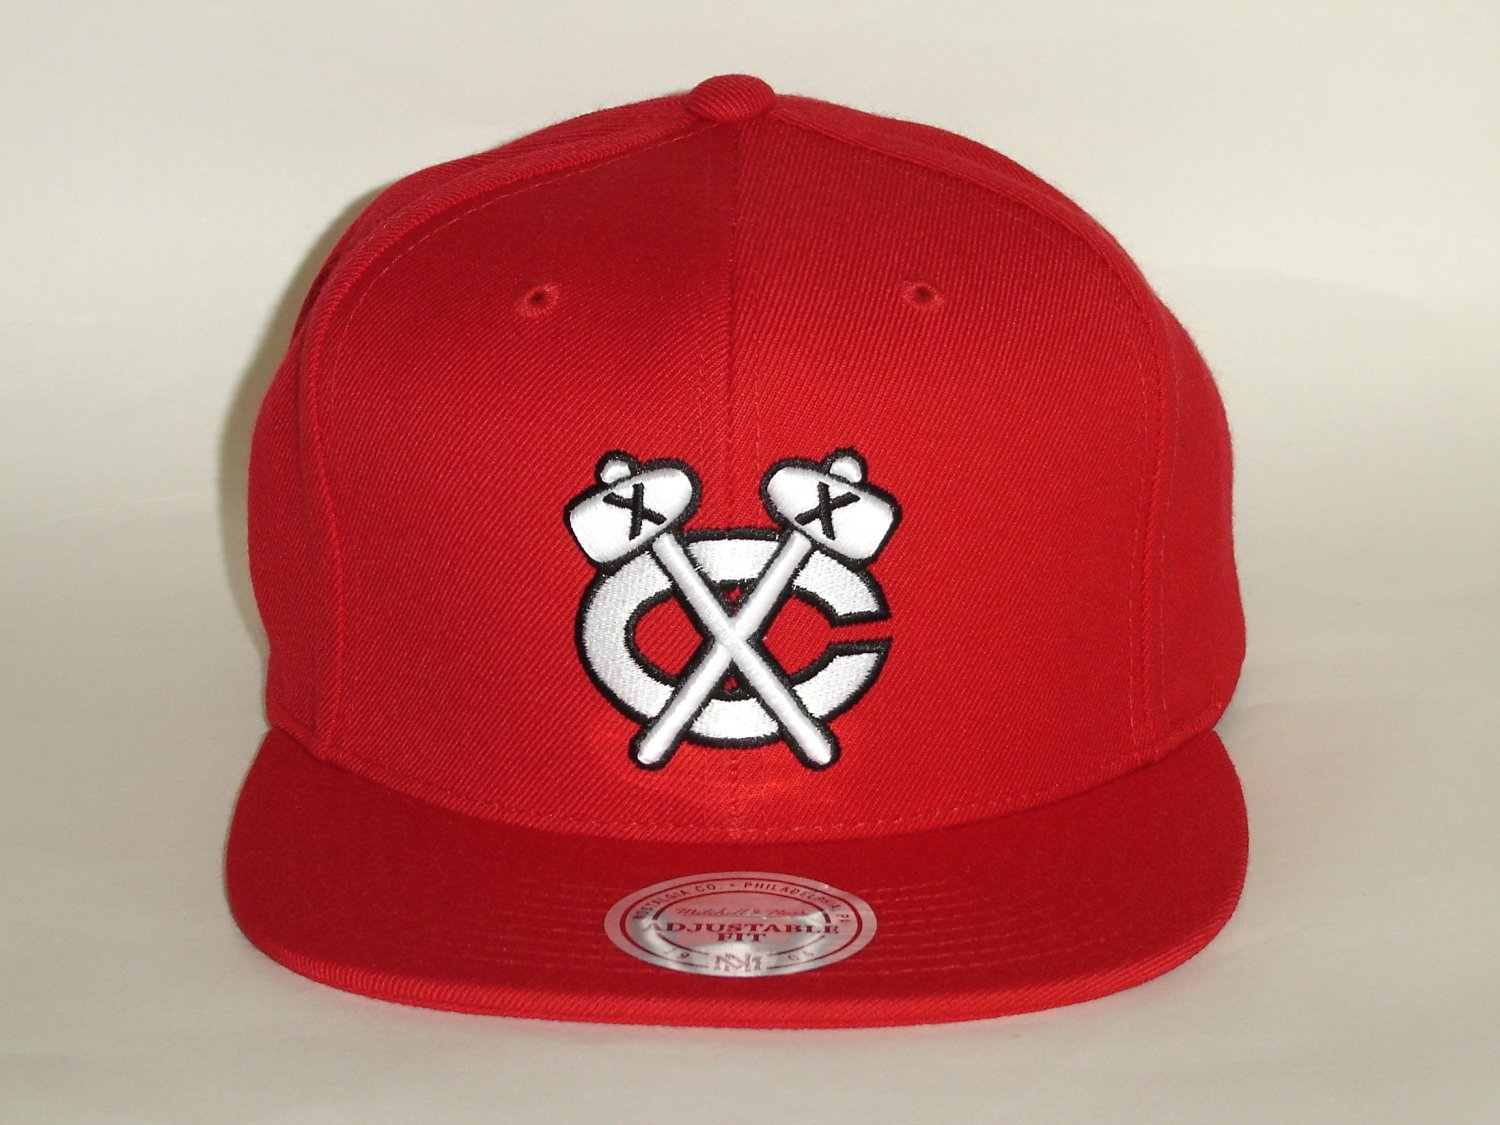 df38a302a32 Mitchell and Ness NHL Chicago BlackHawks Old School Logo Red Snapback Cap